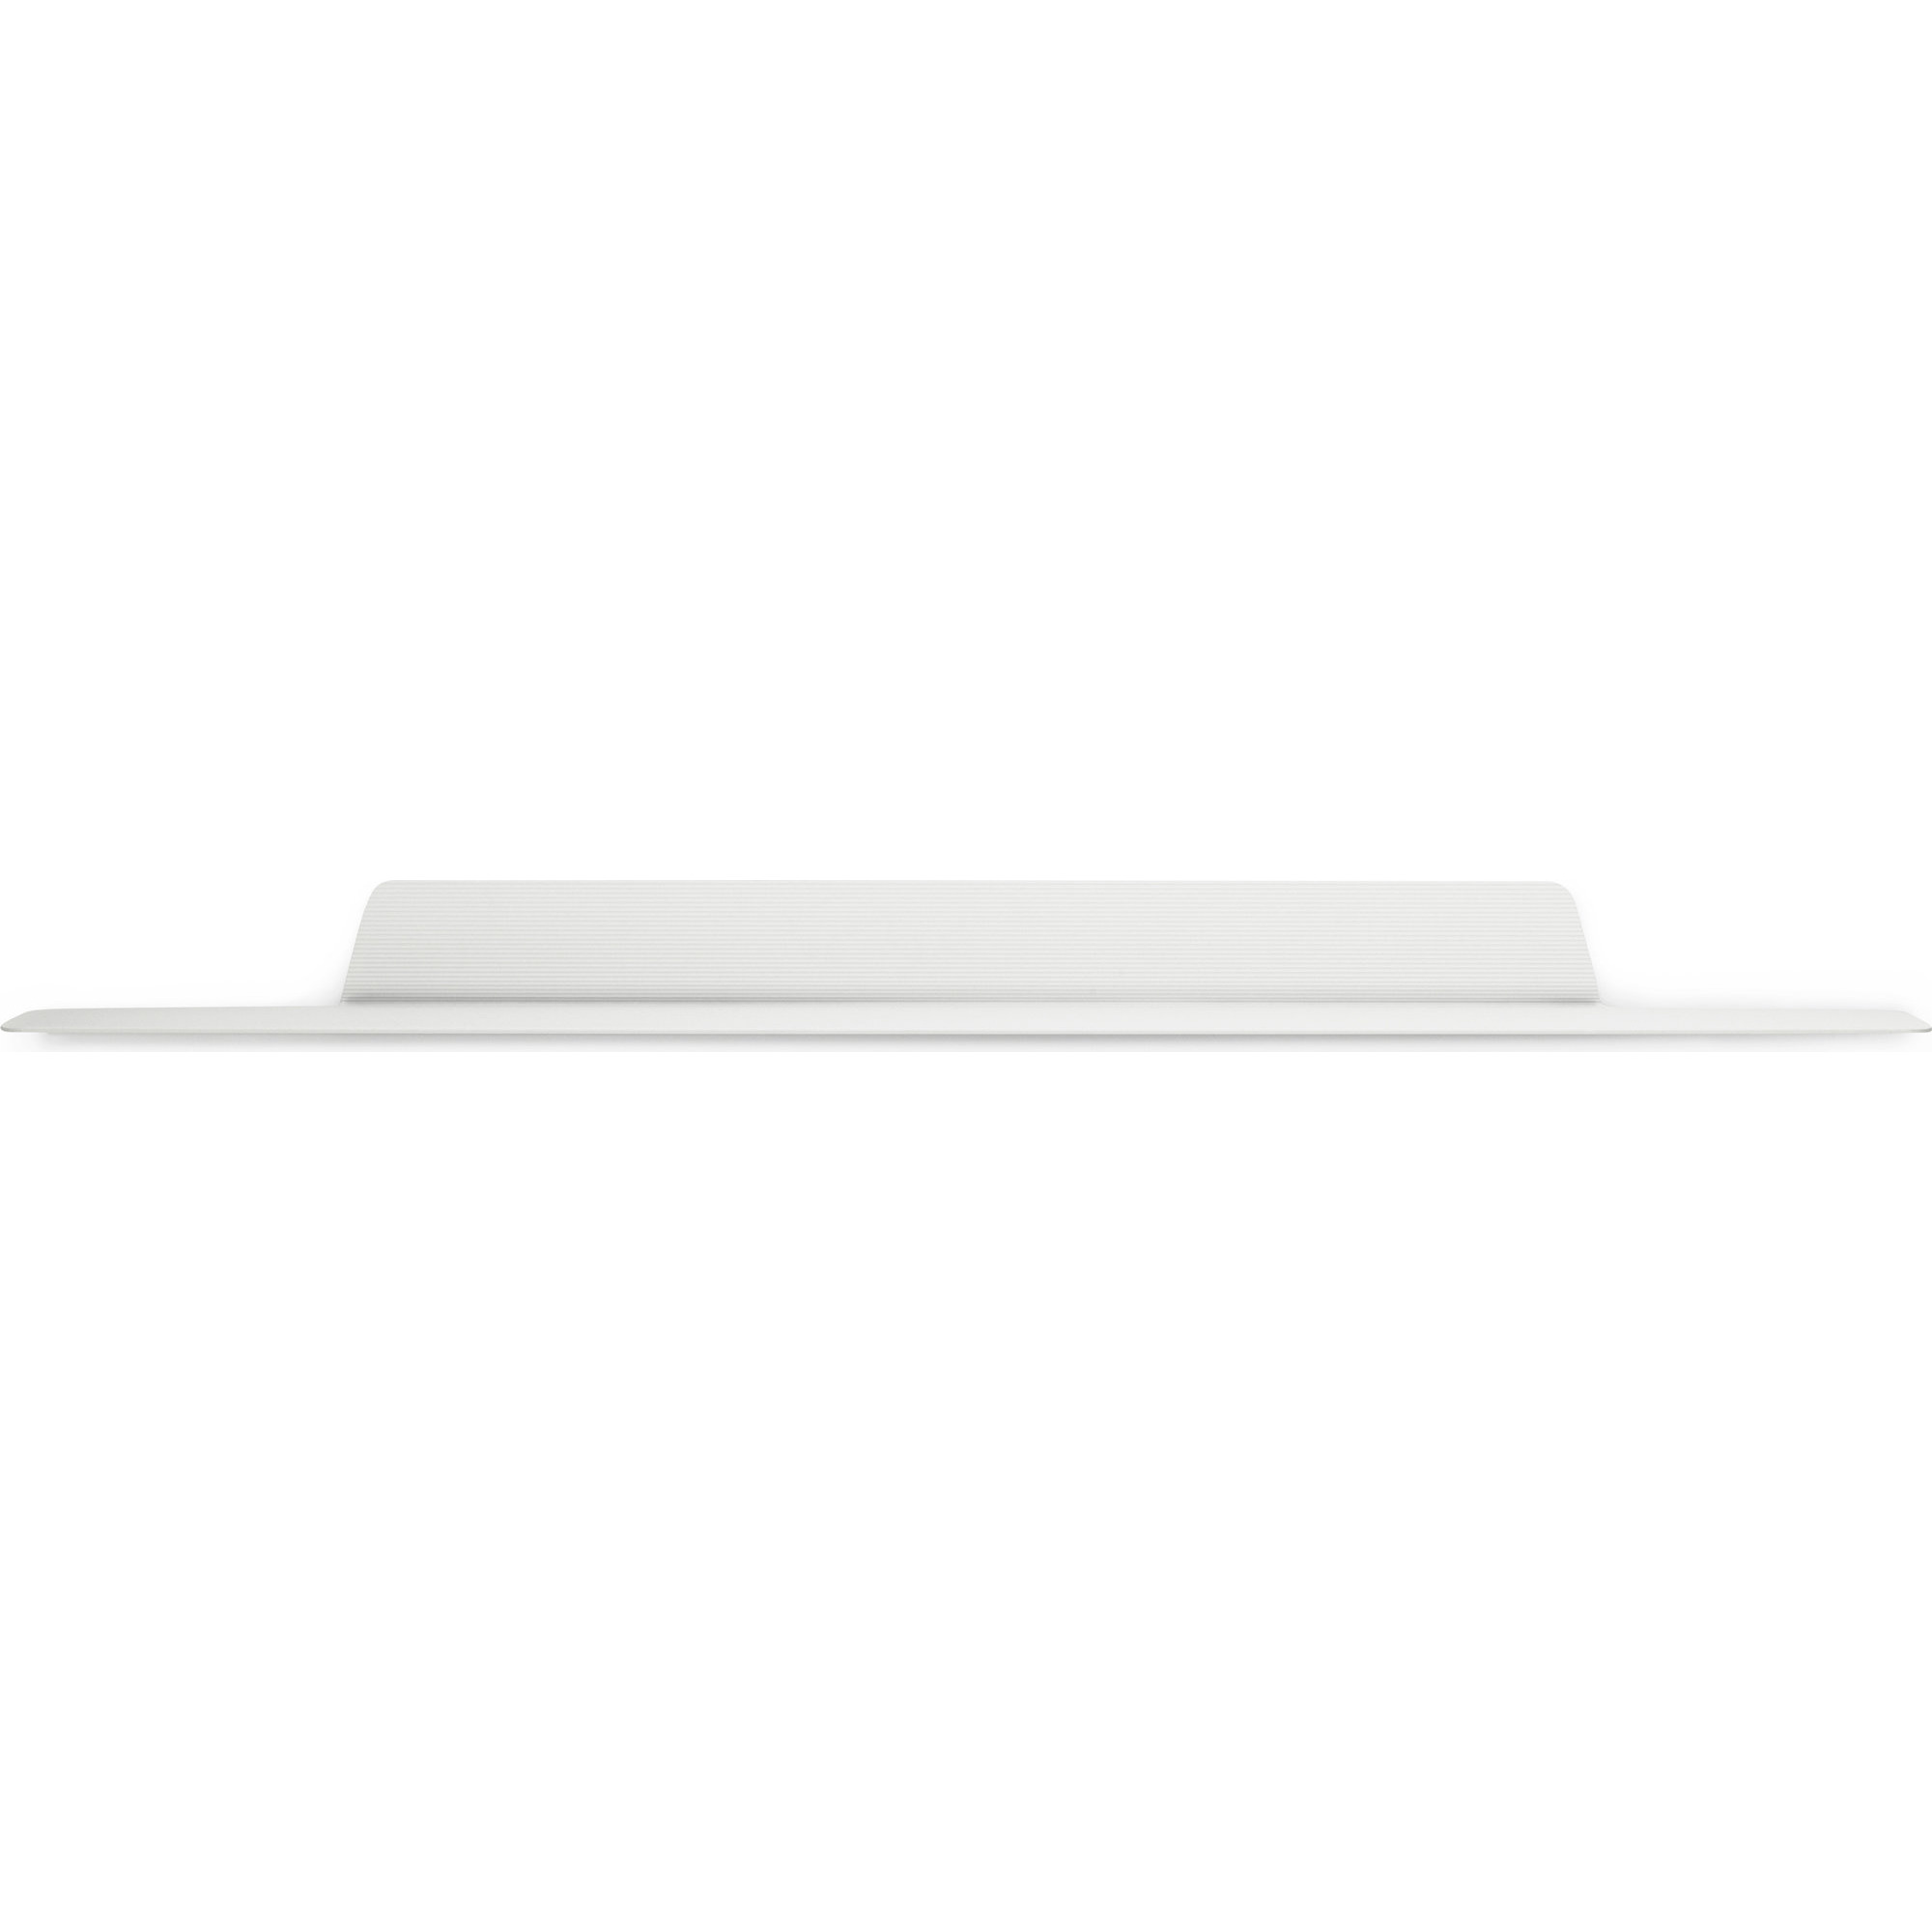 Normann Copenhagen Jet Shelf 160 cm White